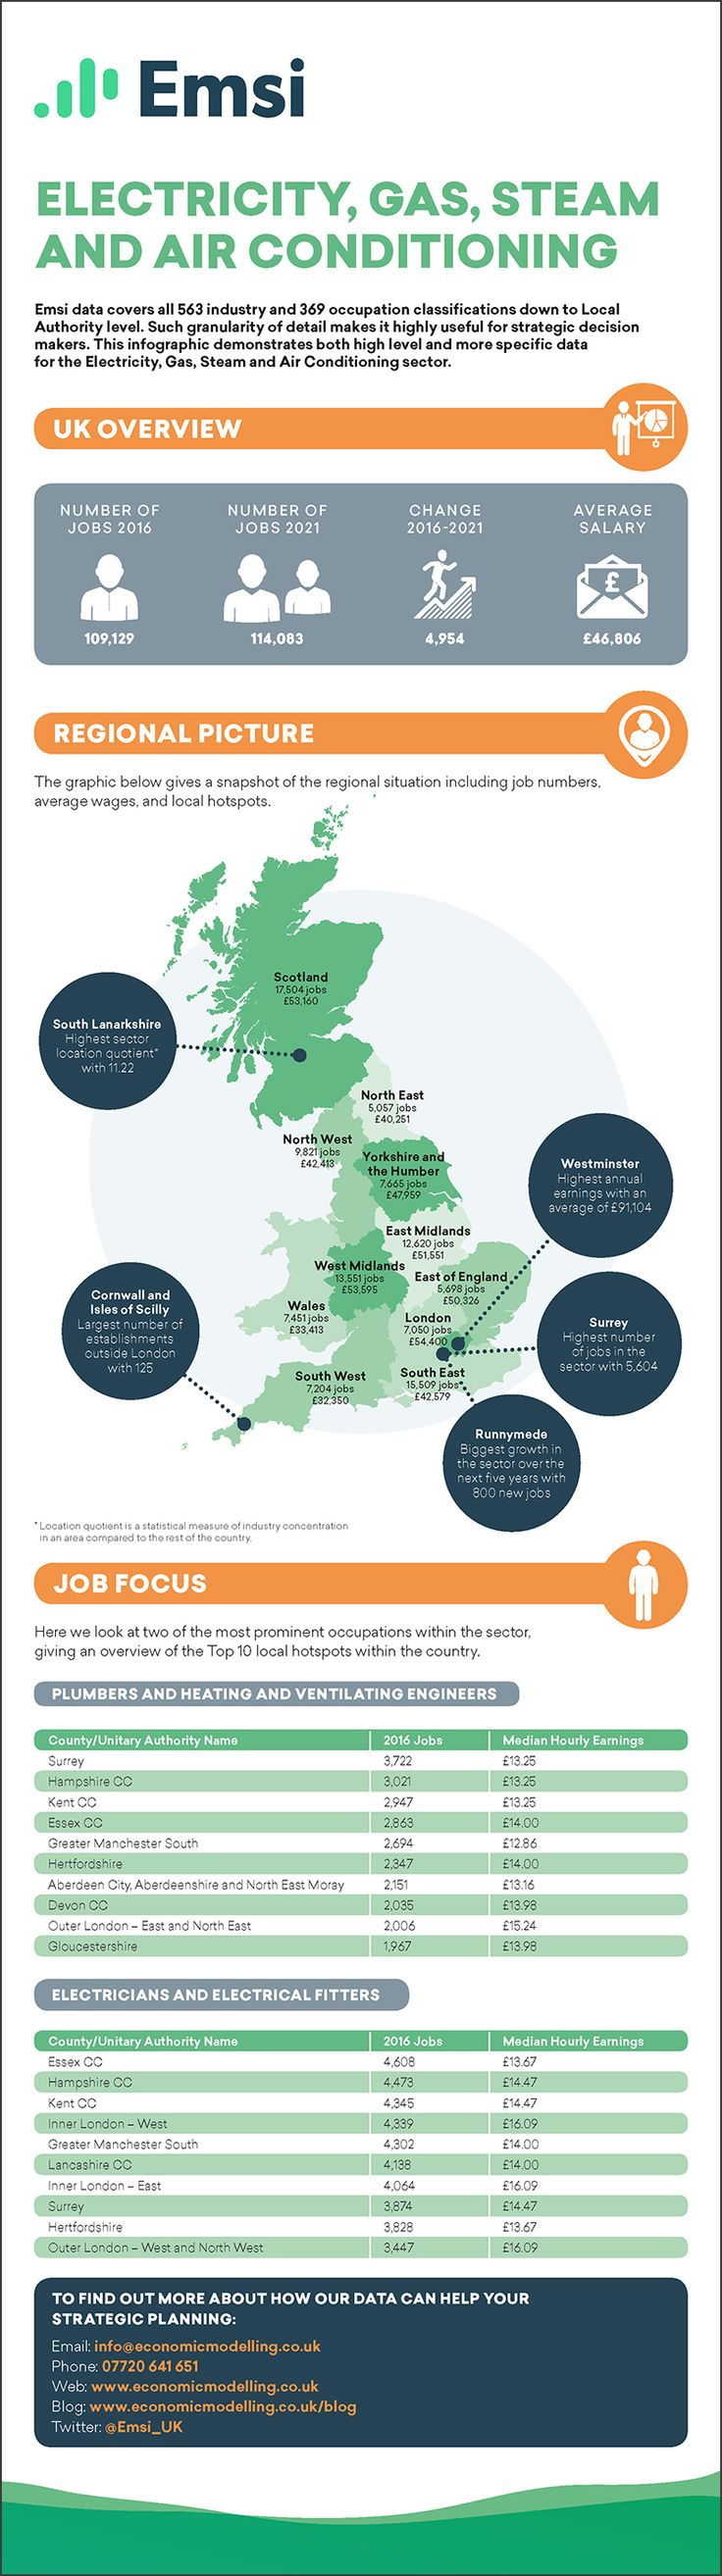 Electricity, Gas, Steam and Air Conditioning EMSI Career Infographic